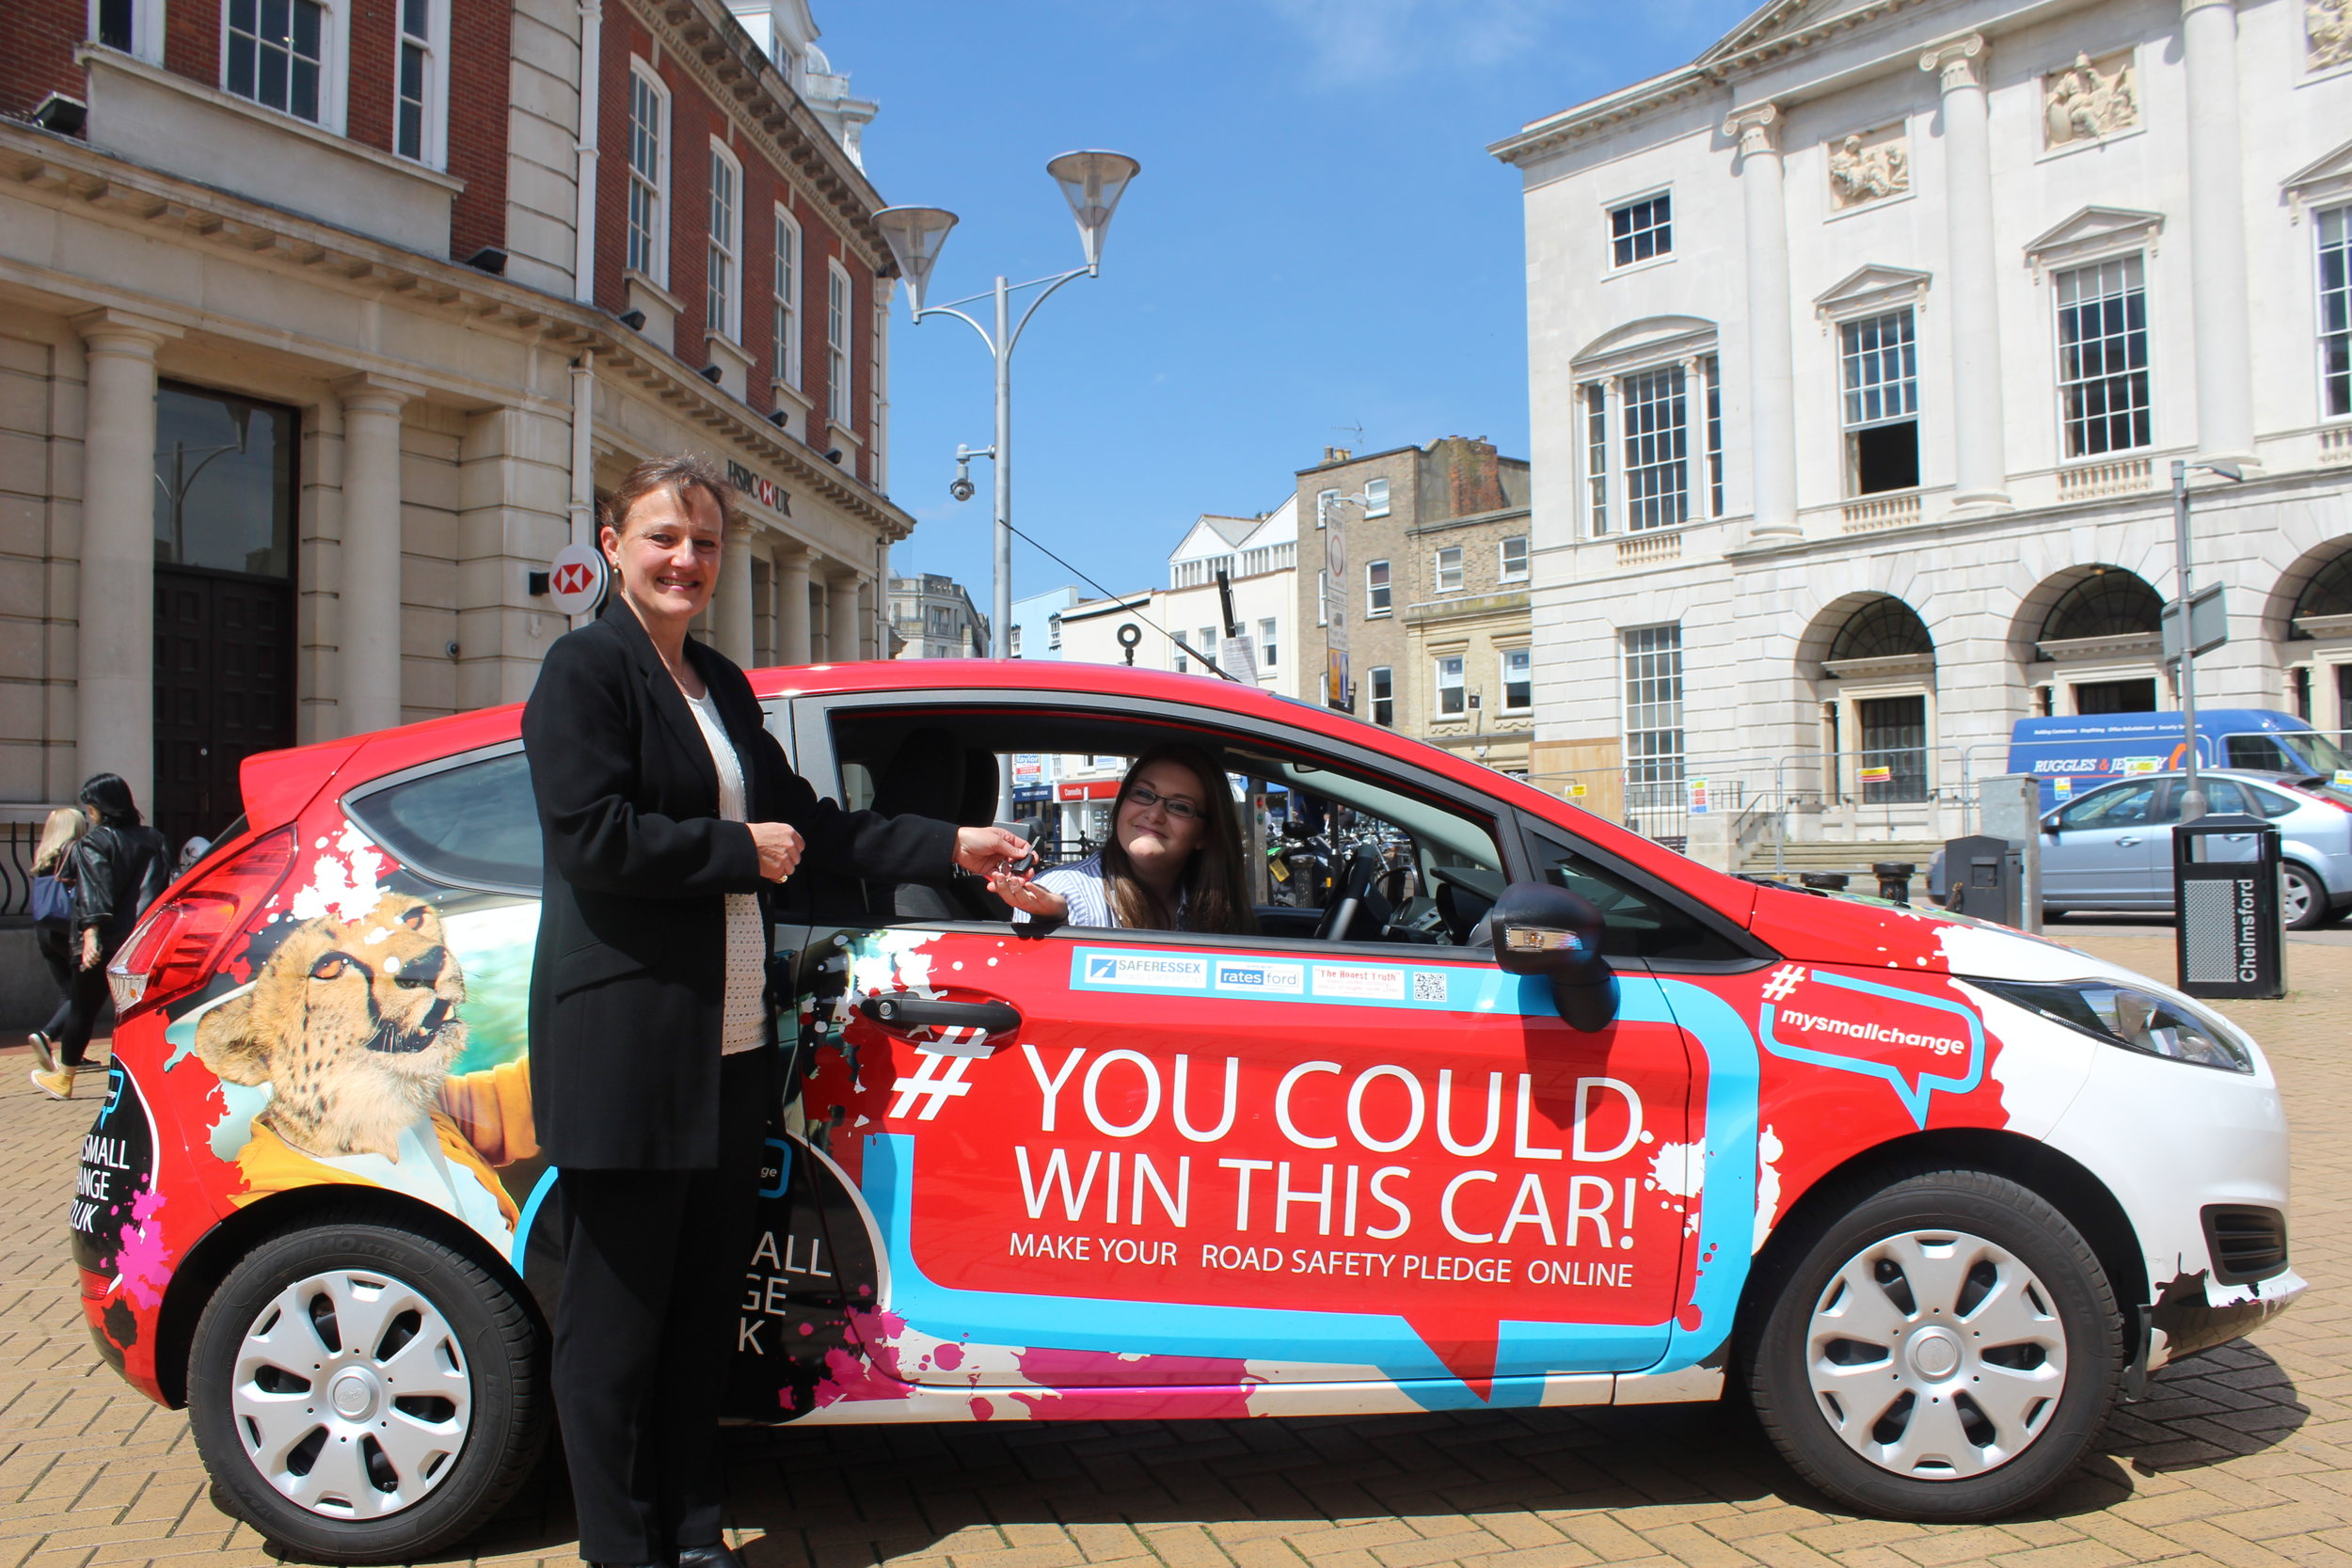 Last year we gave away a car and this lucky lady won!